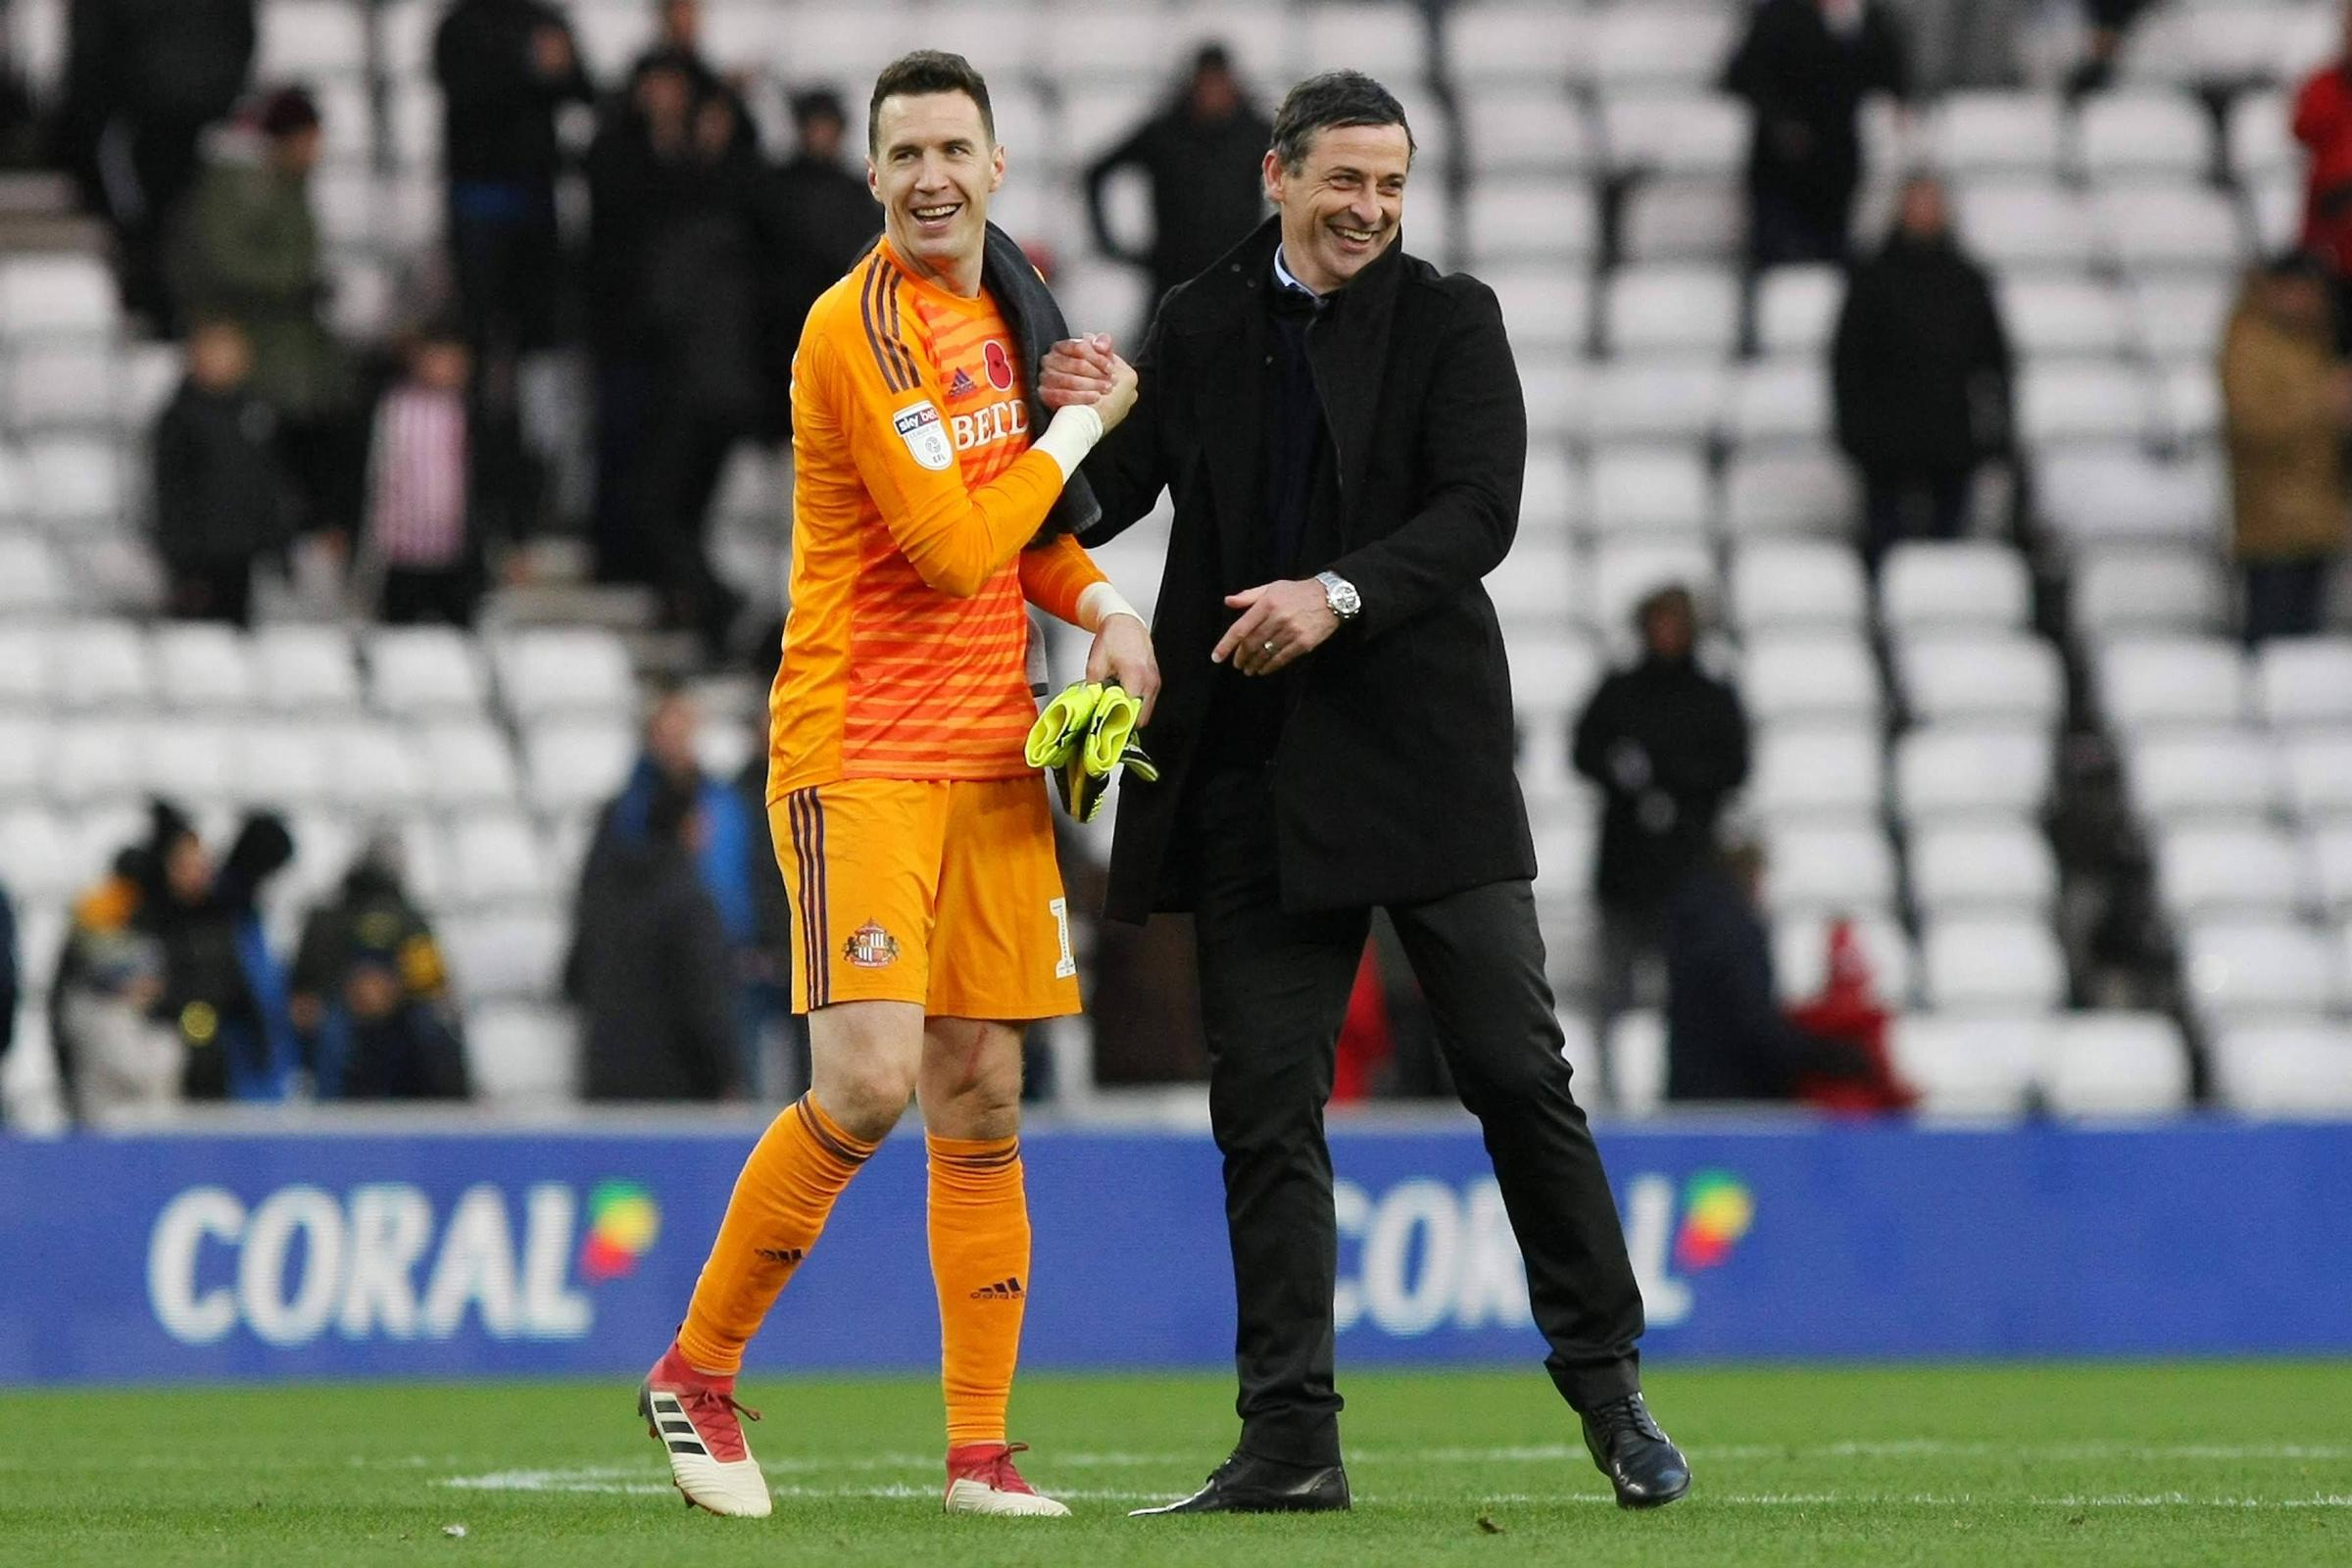 Sunderland manager Jack Ross celebrates victory with goalkeeper Jon McLaughlin after the League 1 match win over Southend United at the Stadium Of Light,  Picture: Steven Hadlow | MI News & Sport Ltd